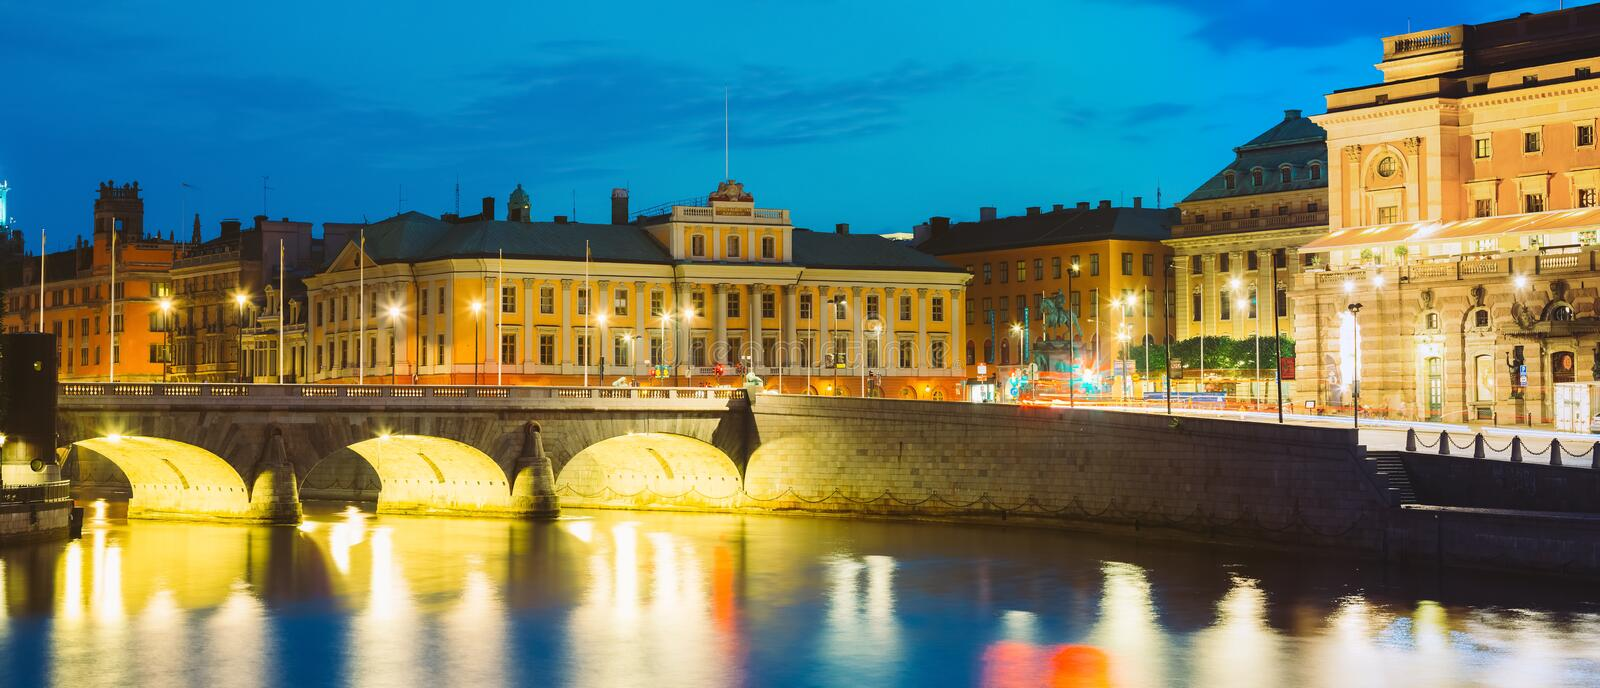 Stockholm Sweden. View Of Norrbro, Old Stone Arch Bridge Over Norrstrom Waterway With Lights Reflections In The Water. Stockholm, Sweden. The Evening Illuminated stock photography